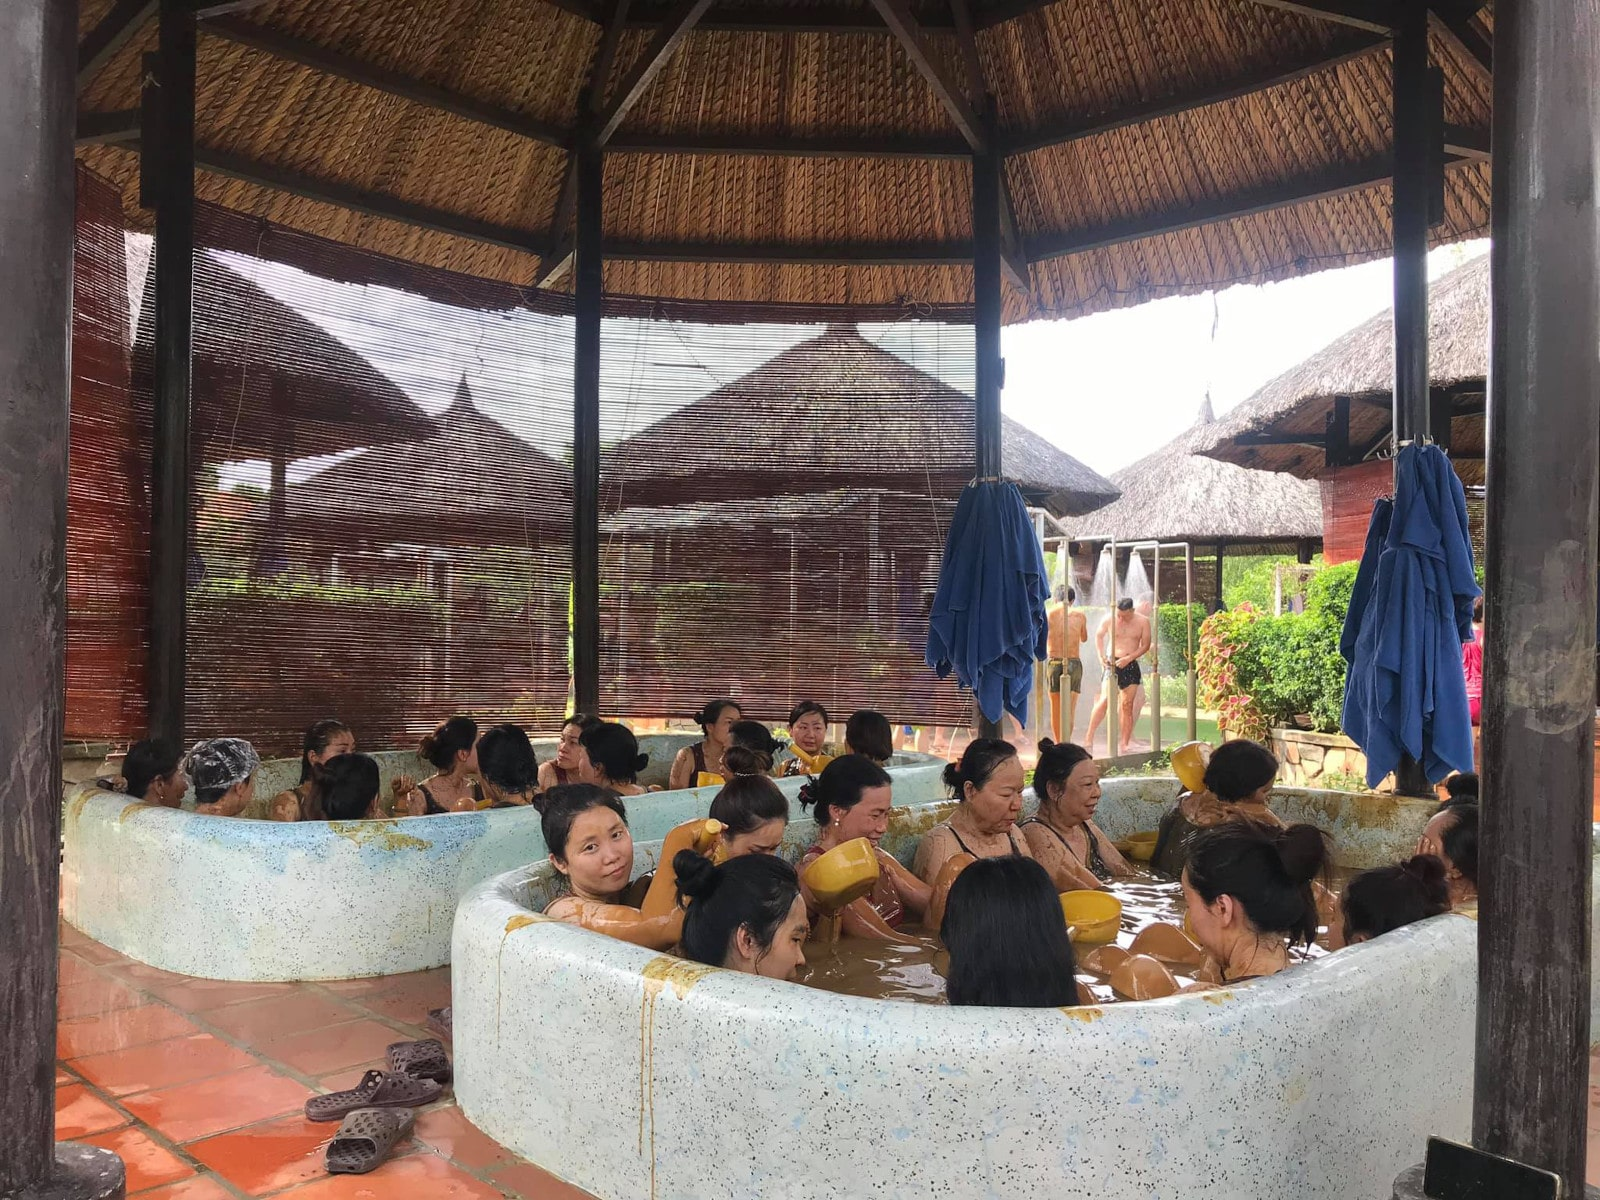 Image of people in the mud baths at Mui Ne Hot Spring Center in Bin Thuan, Vietnam